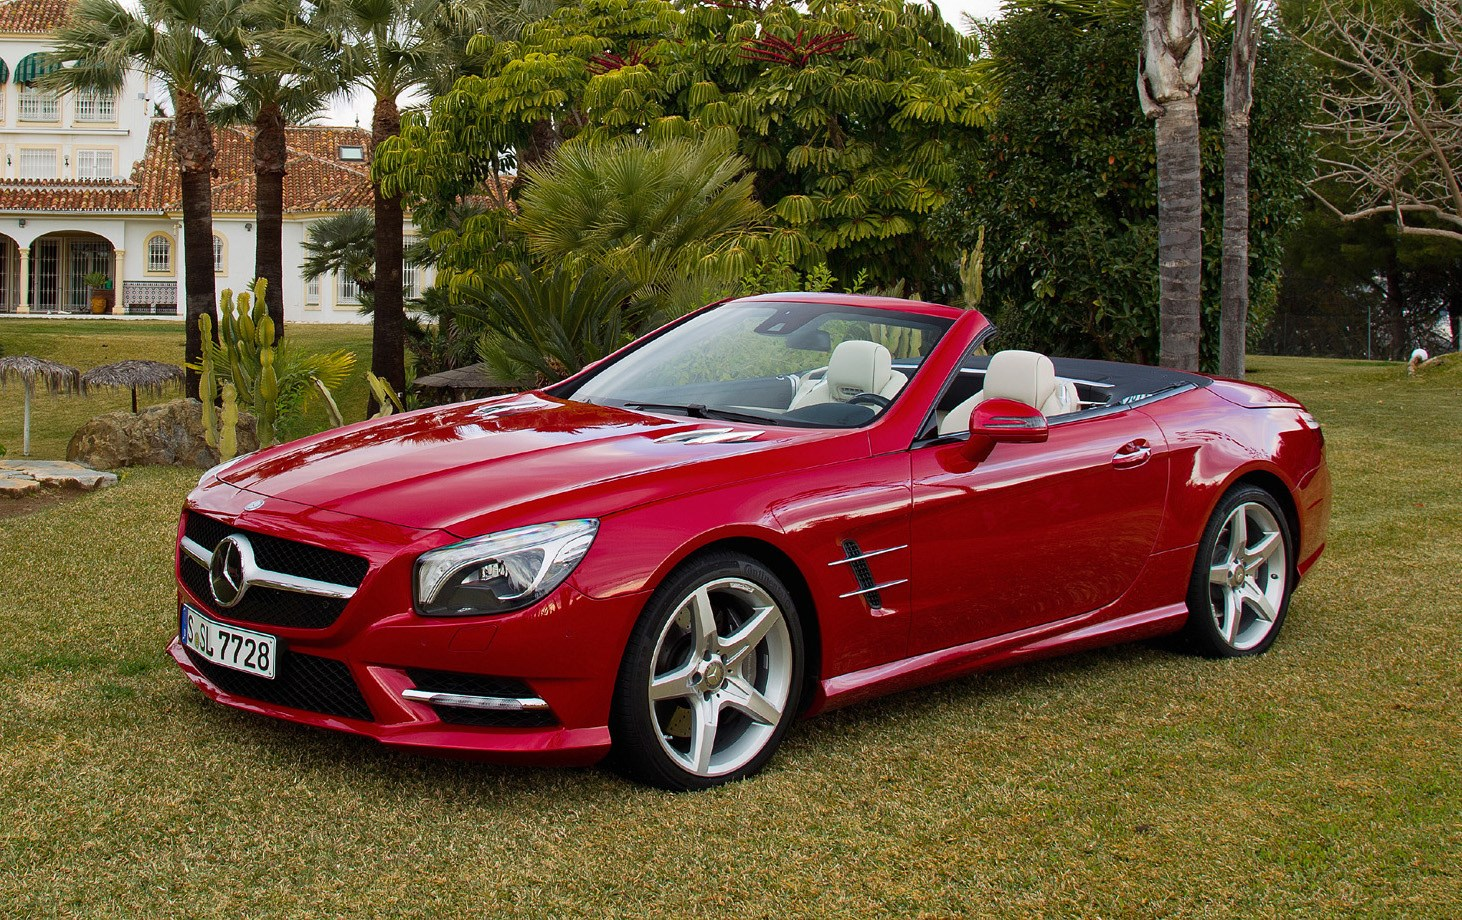 Mercedes benz sl class convertible review 2012 parkers for Mercedes benz sl convertible